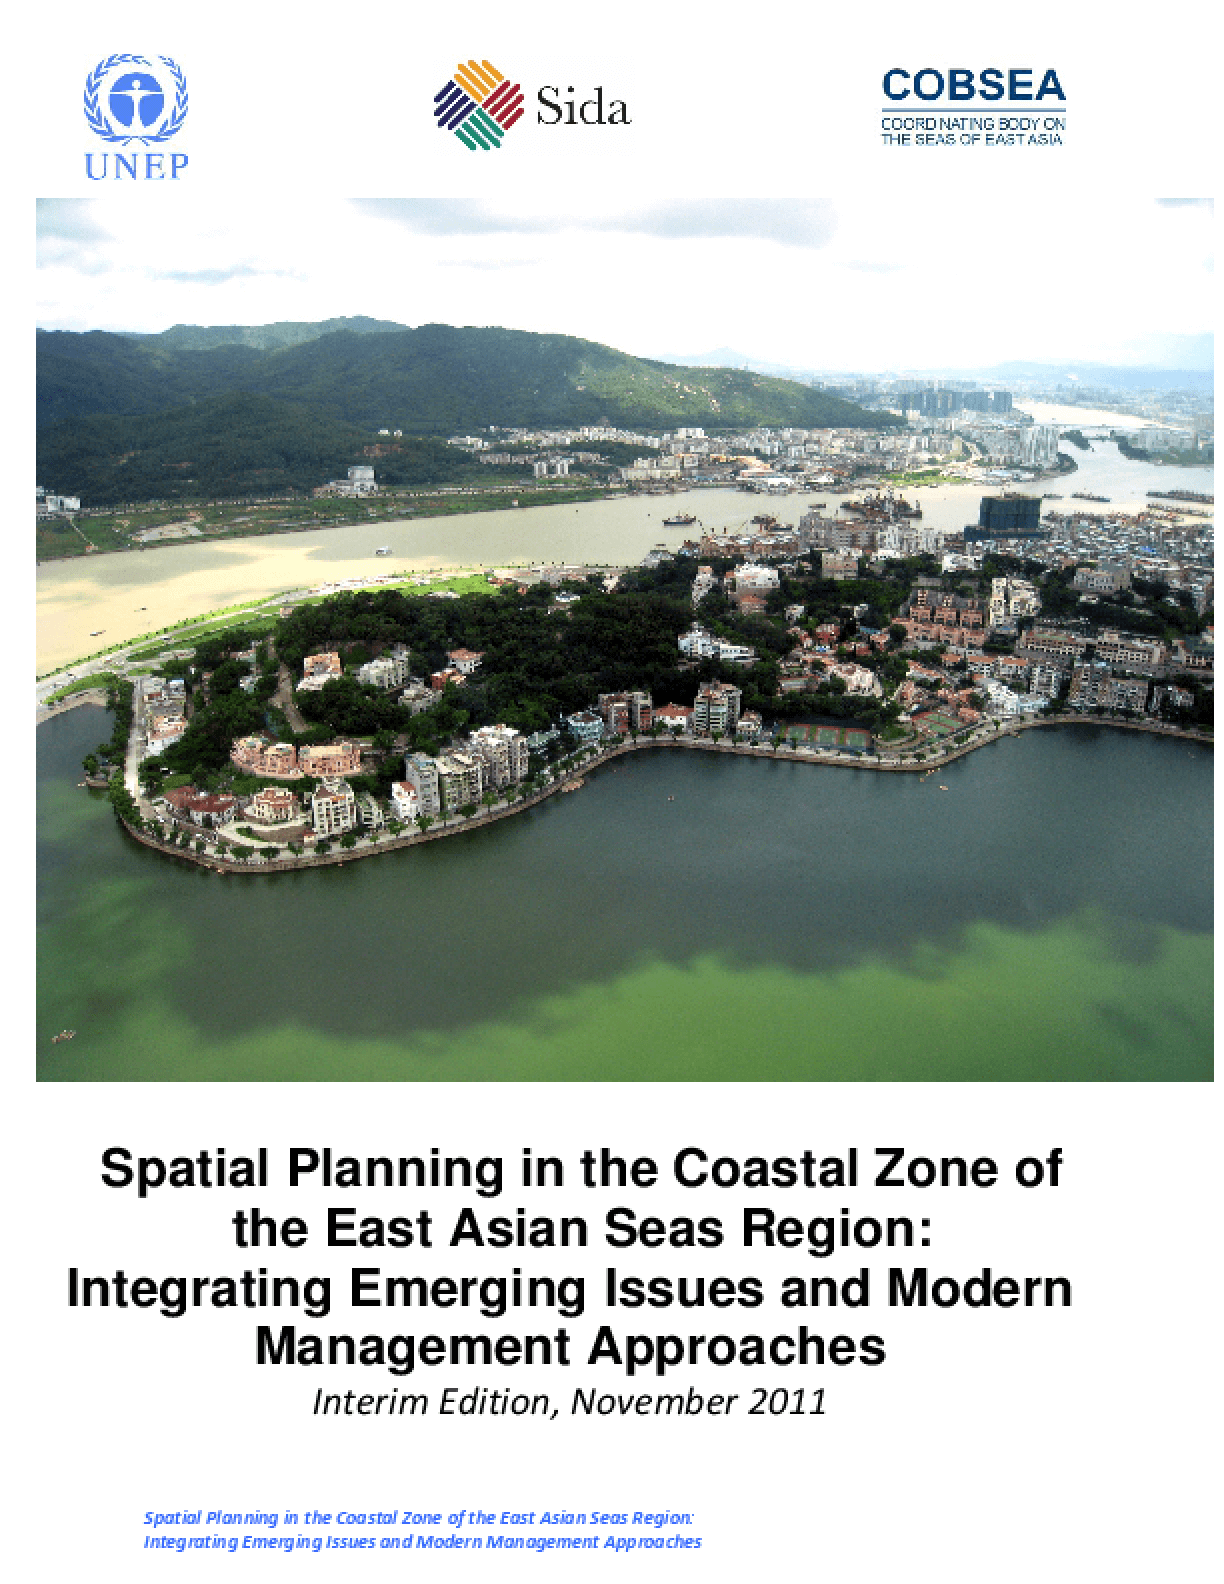 Spatial Planning in the Coastal Zone of the East Asian Seas Region: Integrating Emerging Issues and Modern Management Approaches